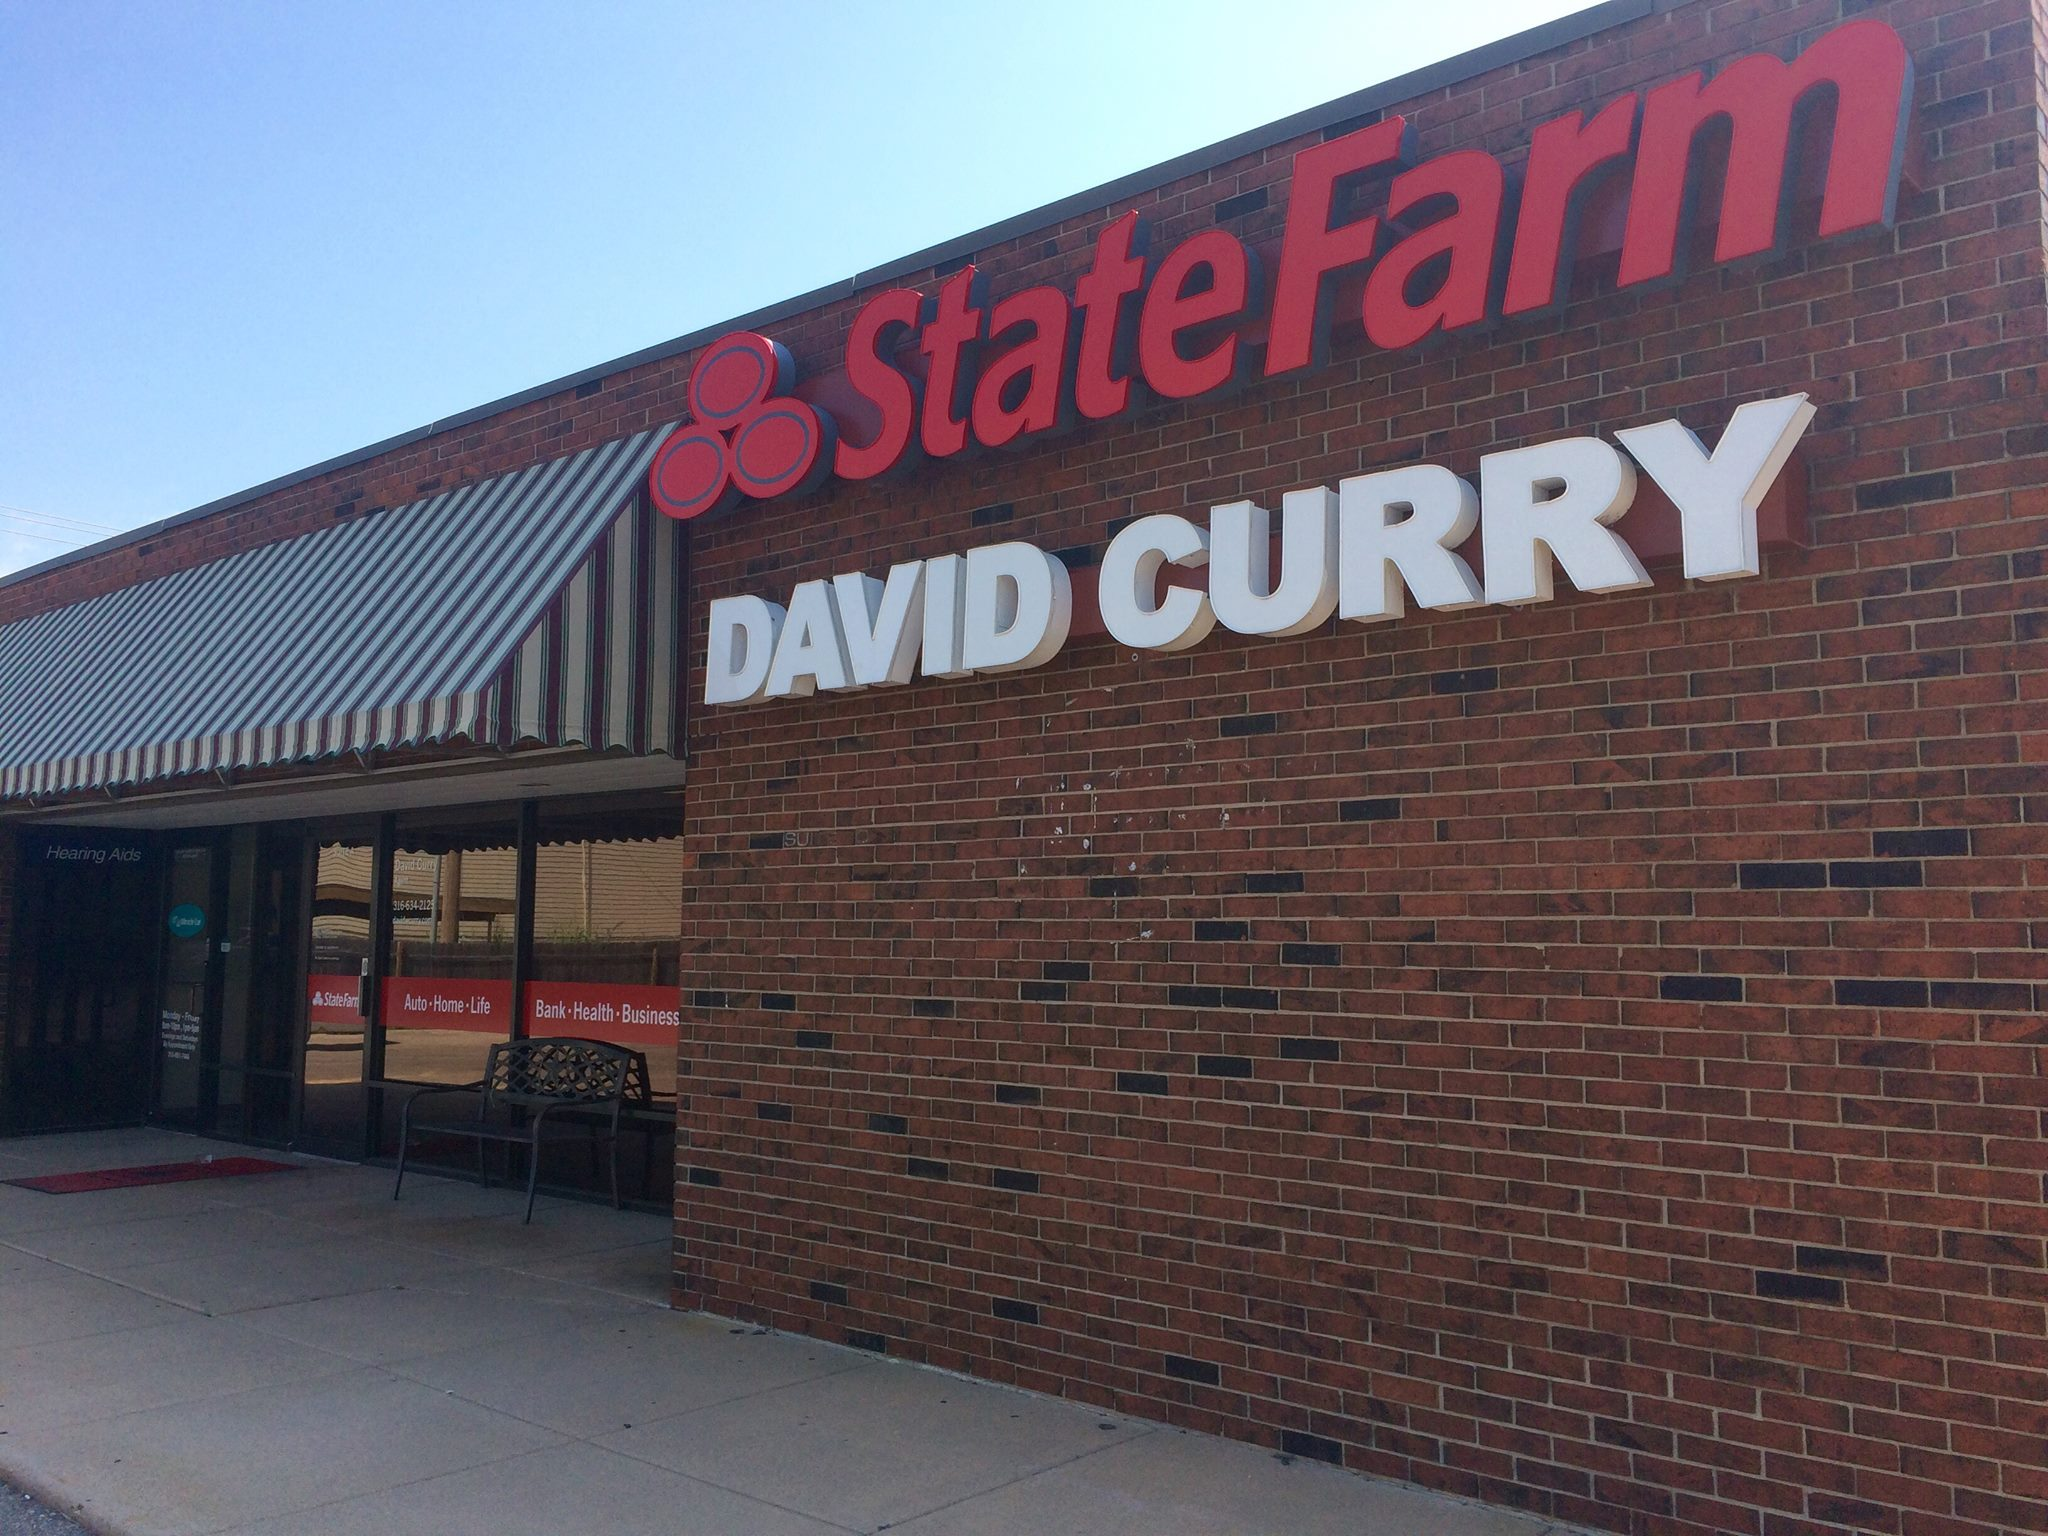 David Curry State Farm